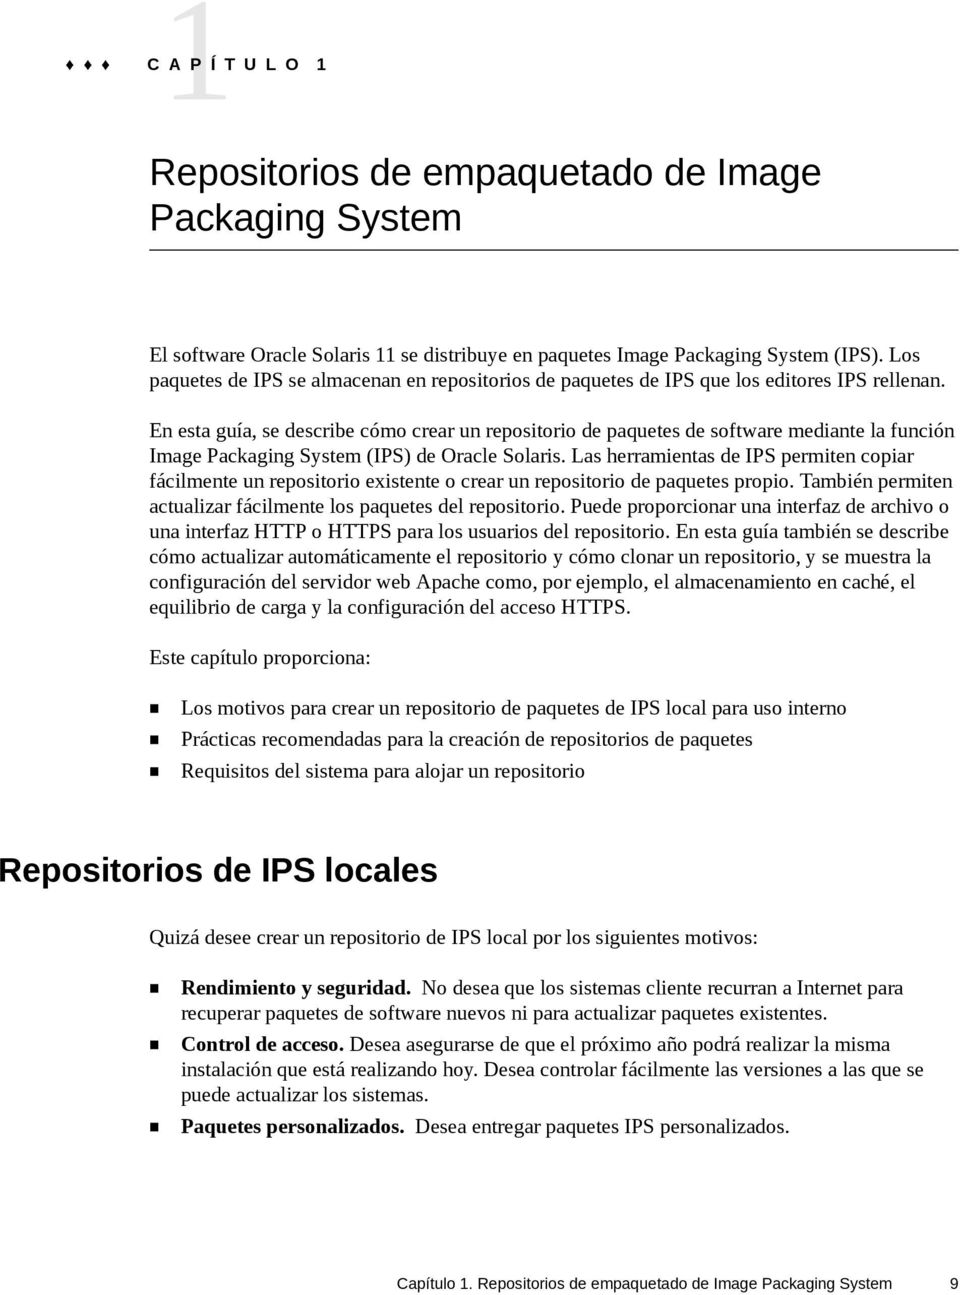 En esta guía, se describe cómo crear un repositorio de paquetes de software mediante la función Image Packaging System (IPS) de Oracle Solaris.